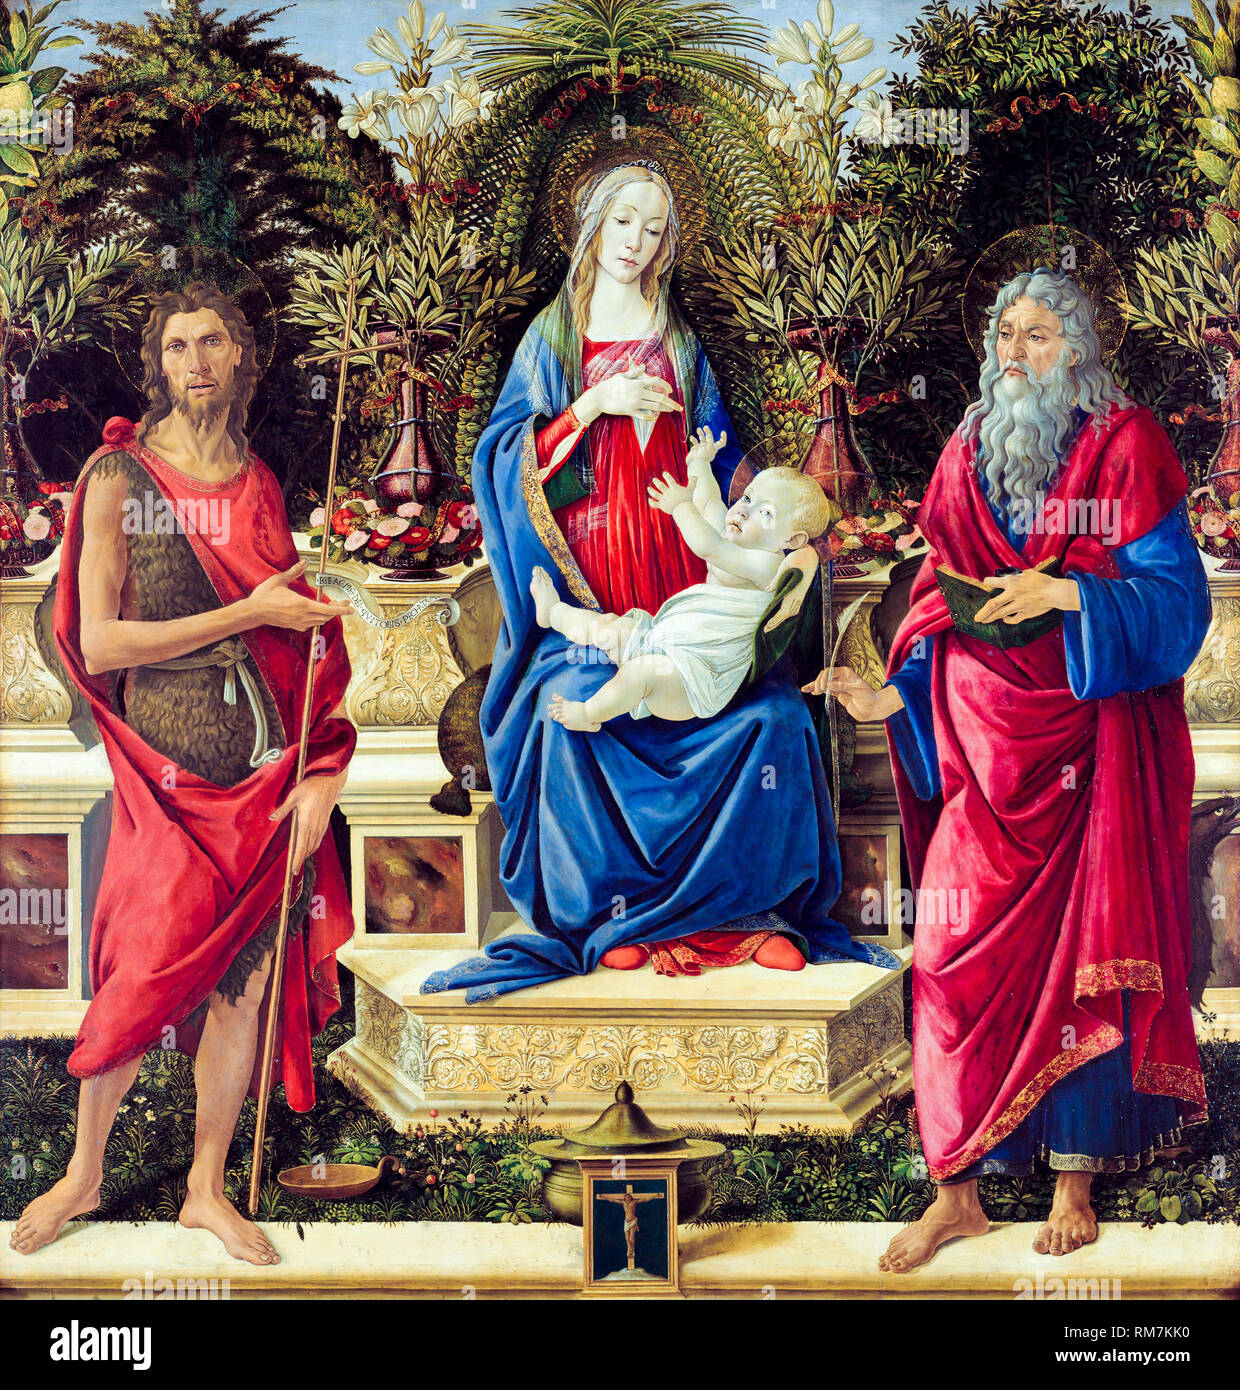 Madonna with Saints, Bardi Altarpiece, painting by Sandro Botticelli, 1485 - Stock Image